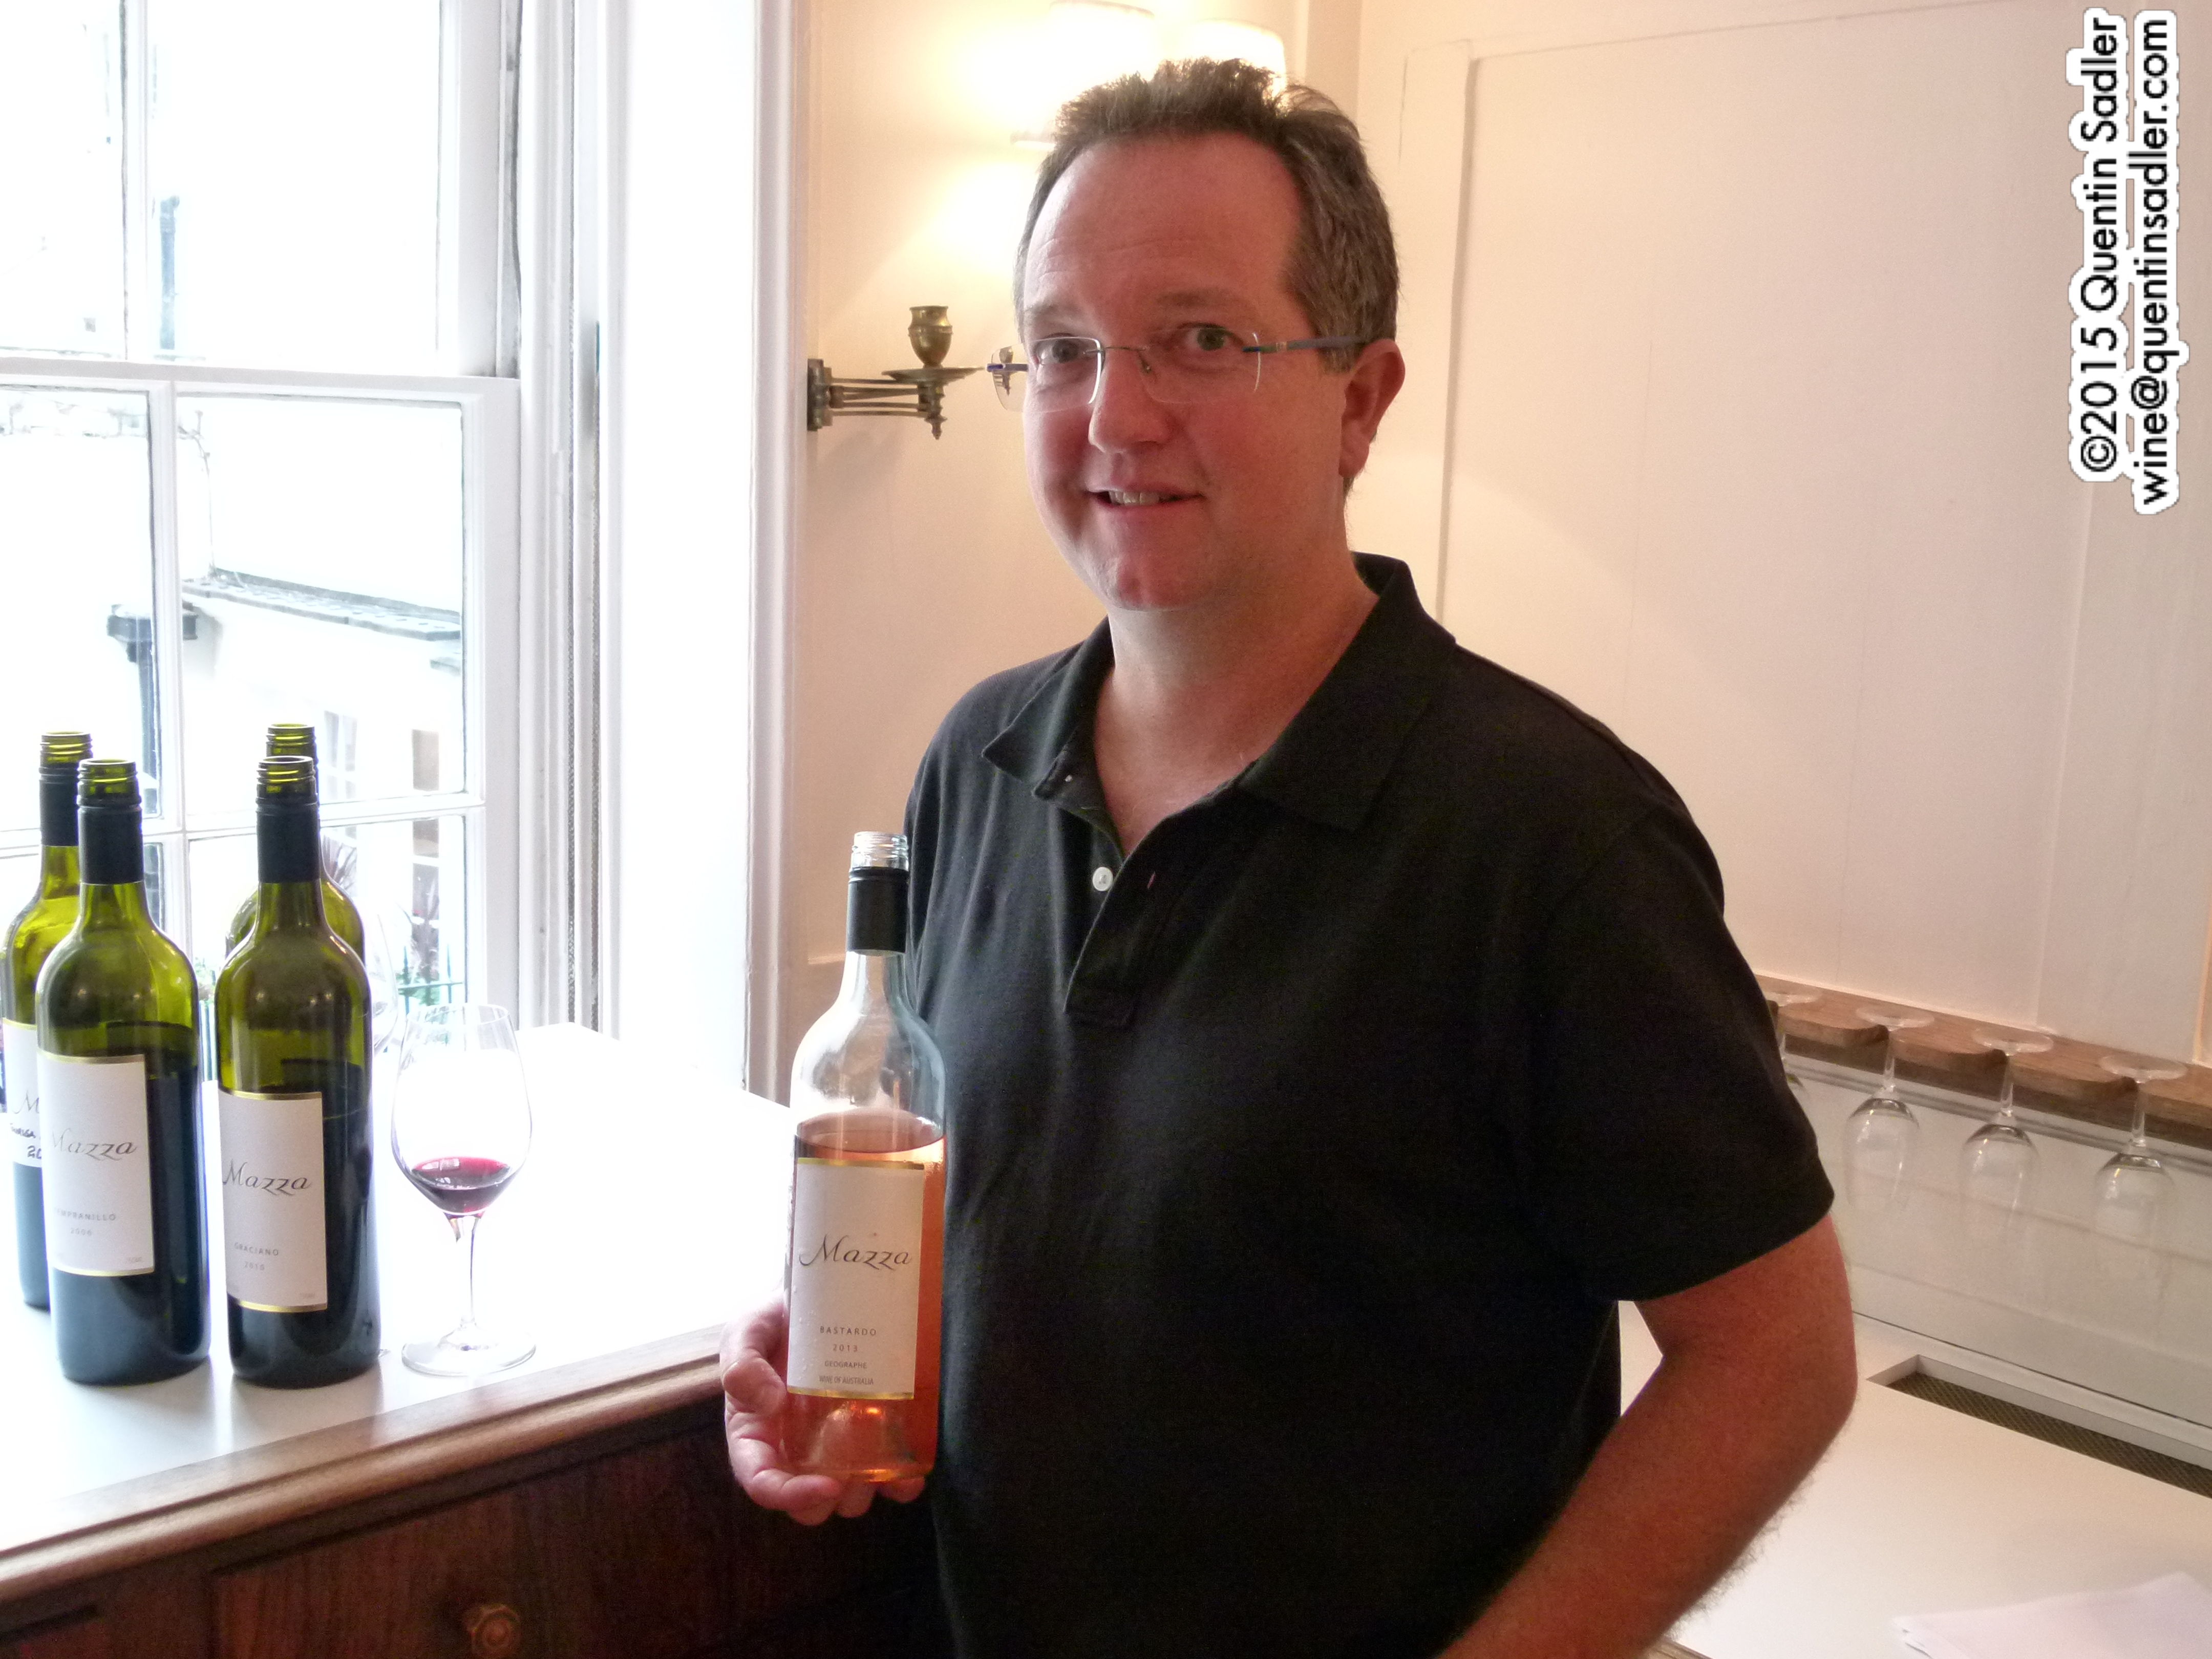 Bordeaux Quentin Sadlers Wine Page Tendencies Short Shirts Basic Long Collar Less Burgundy L David Mazza Showing Me His Wines At Berry Bros Rudd London